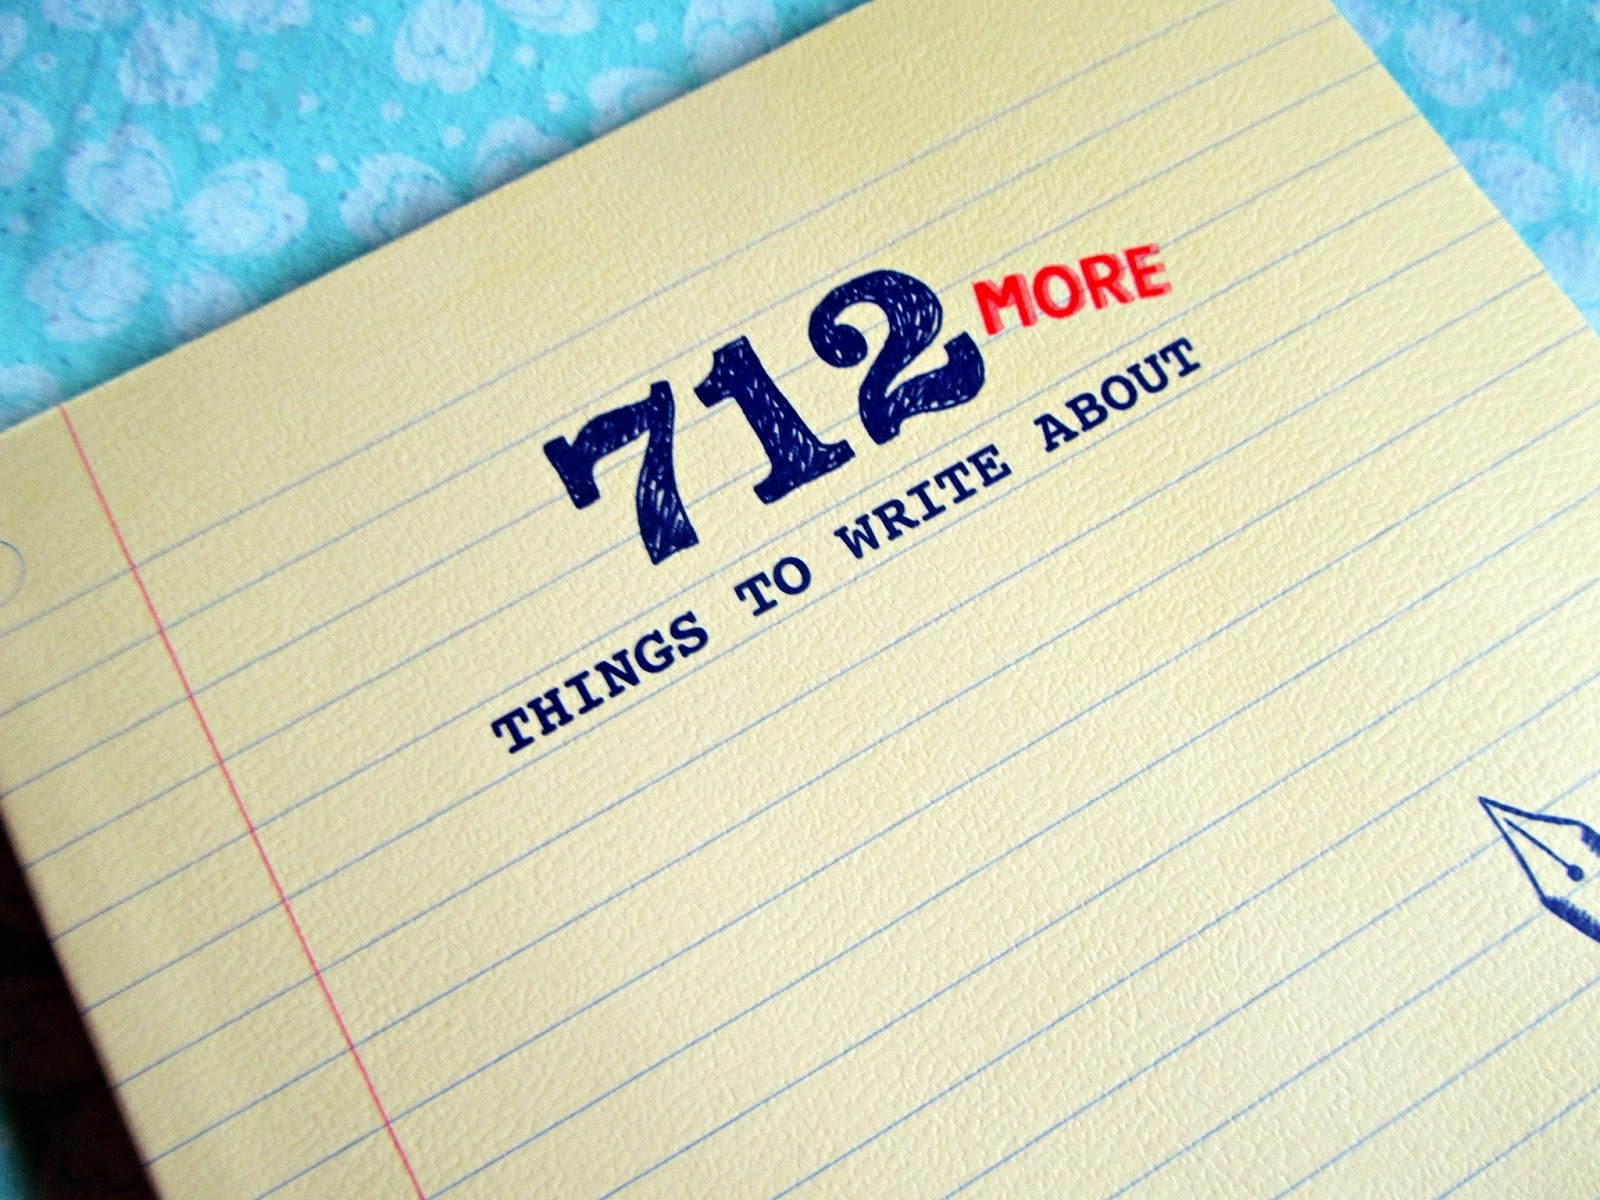 642 things to write about prompts for text